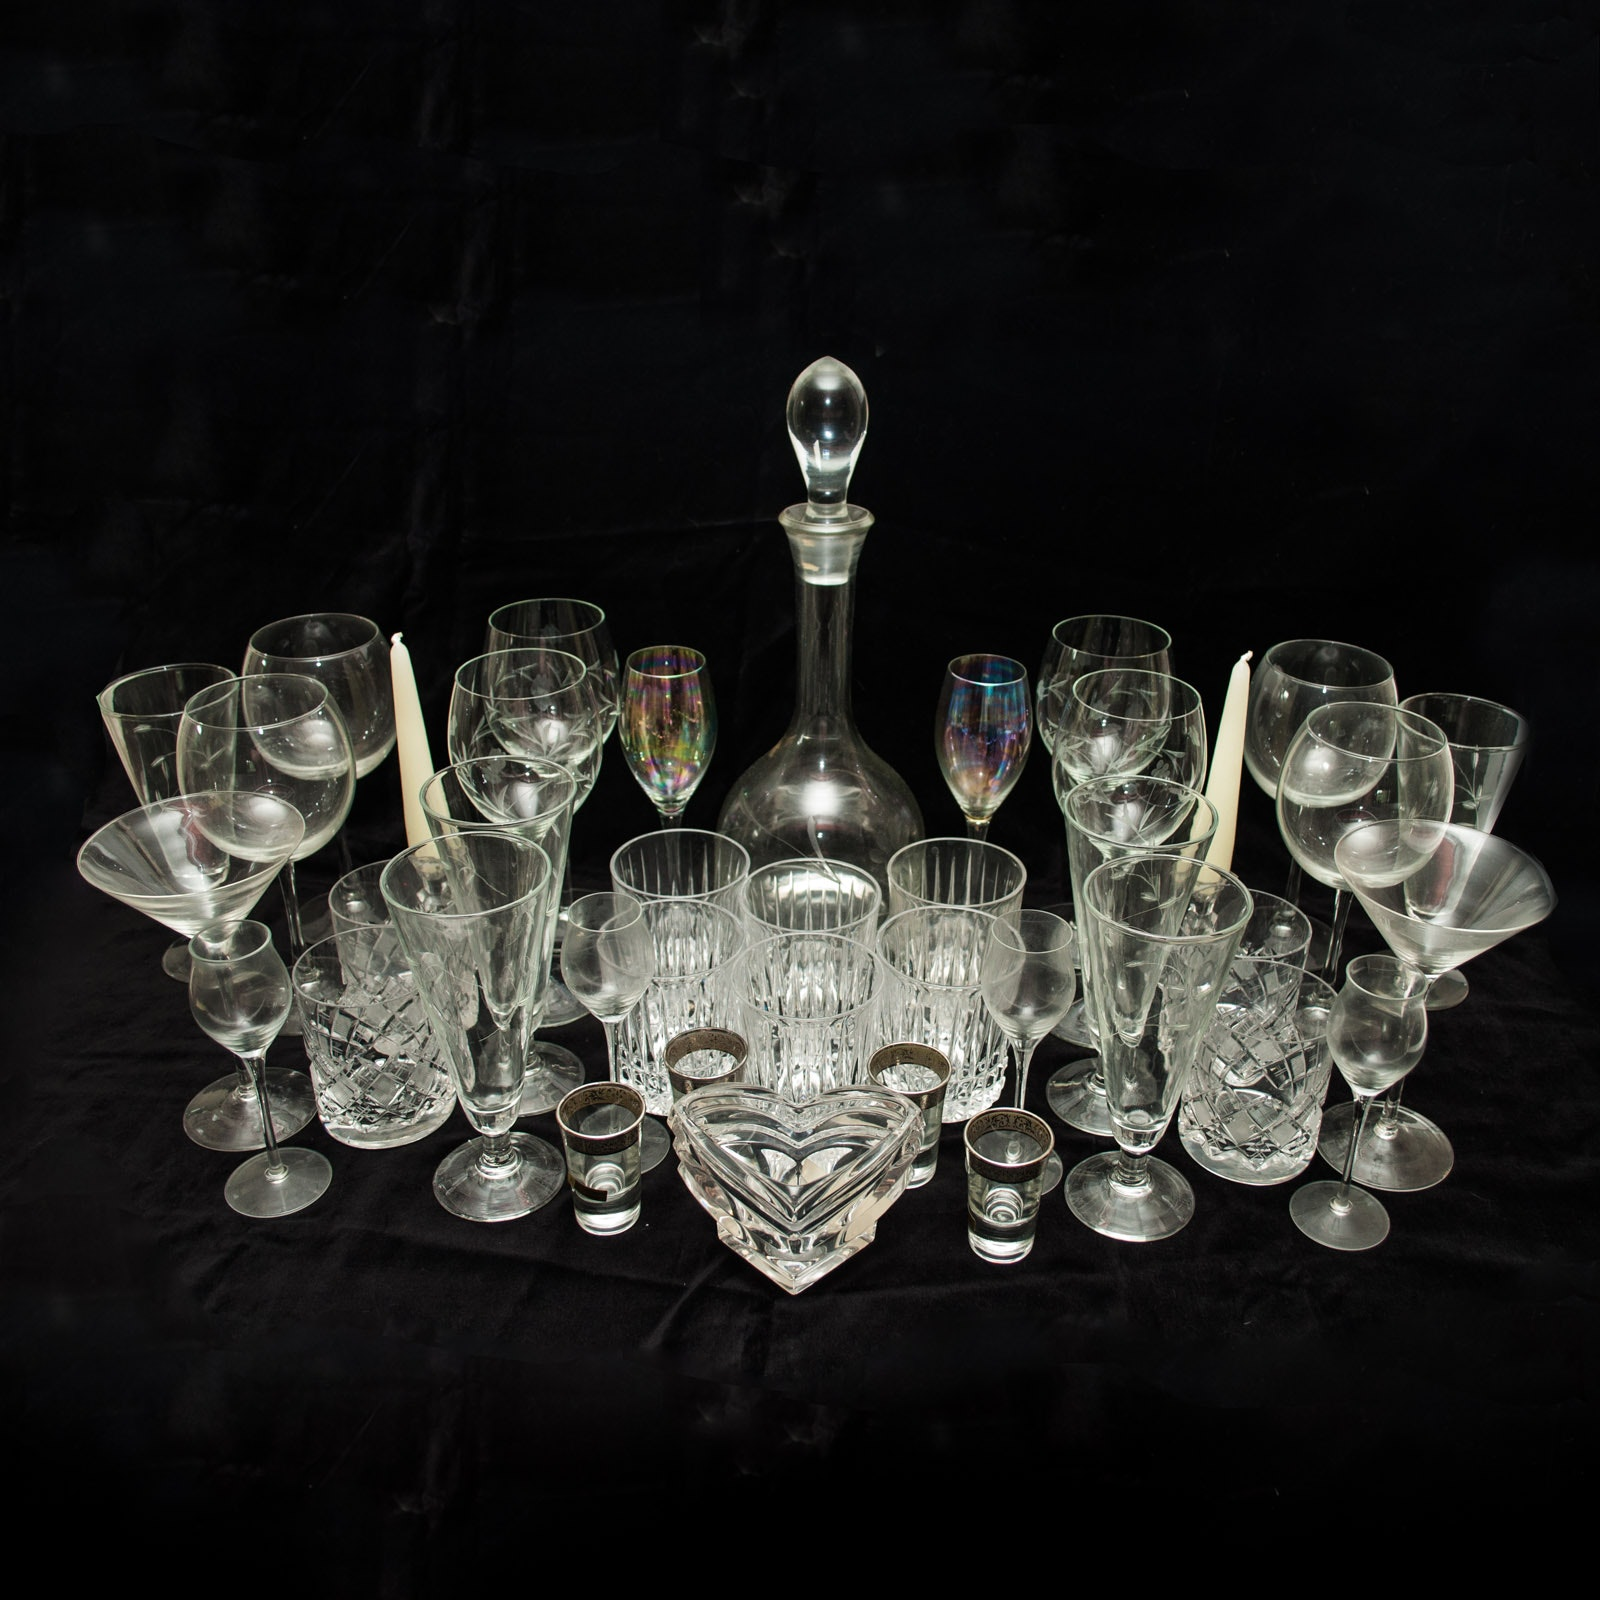 Crystal and Glass Stemware and Barware including Towle and Mikasa